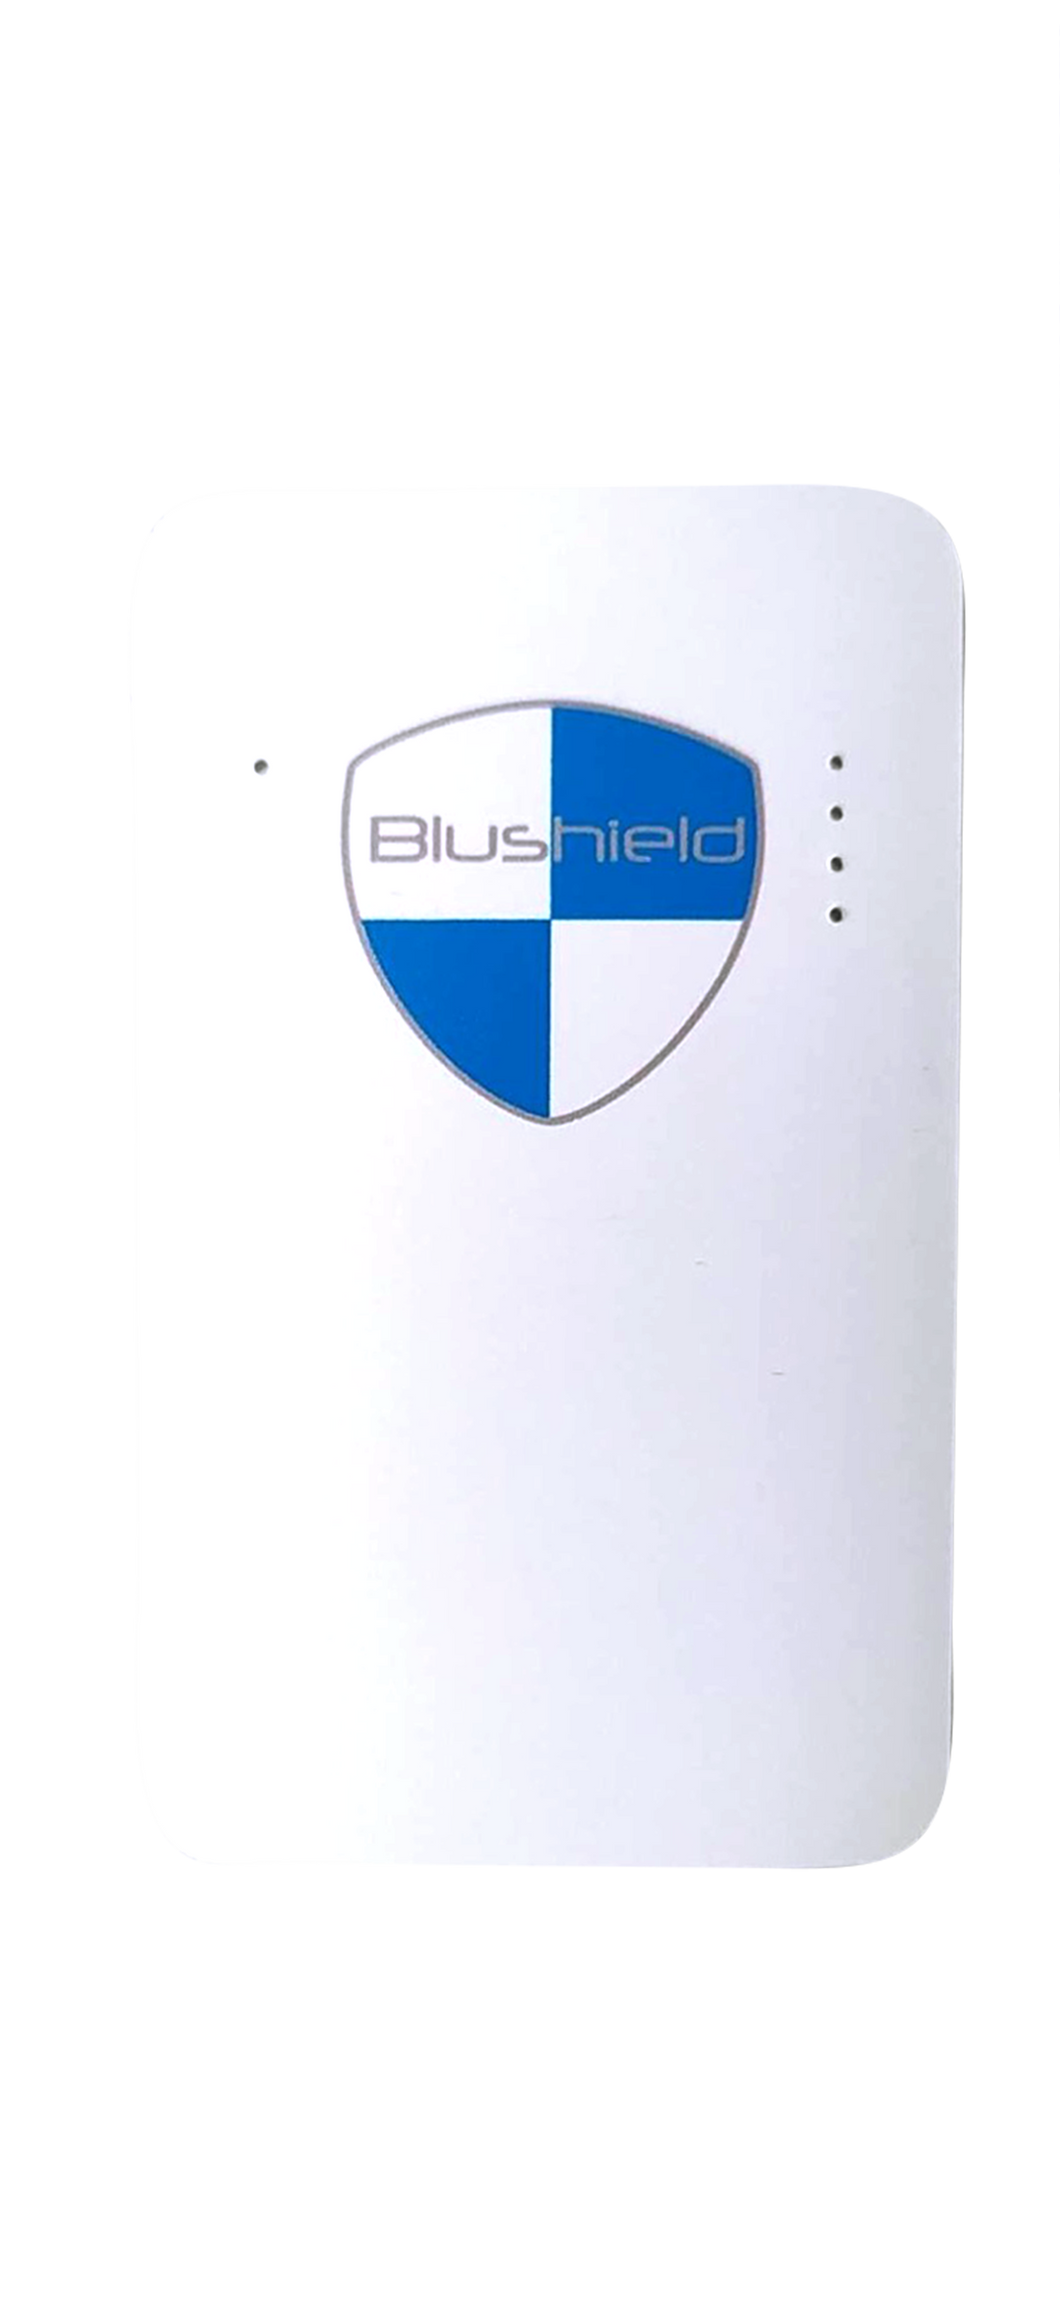 BLU SHIELD Tesla Gold Series White Portable